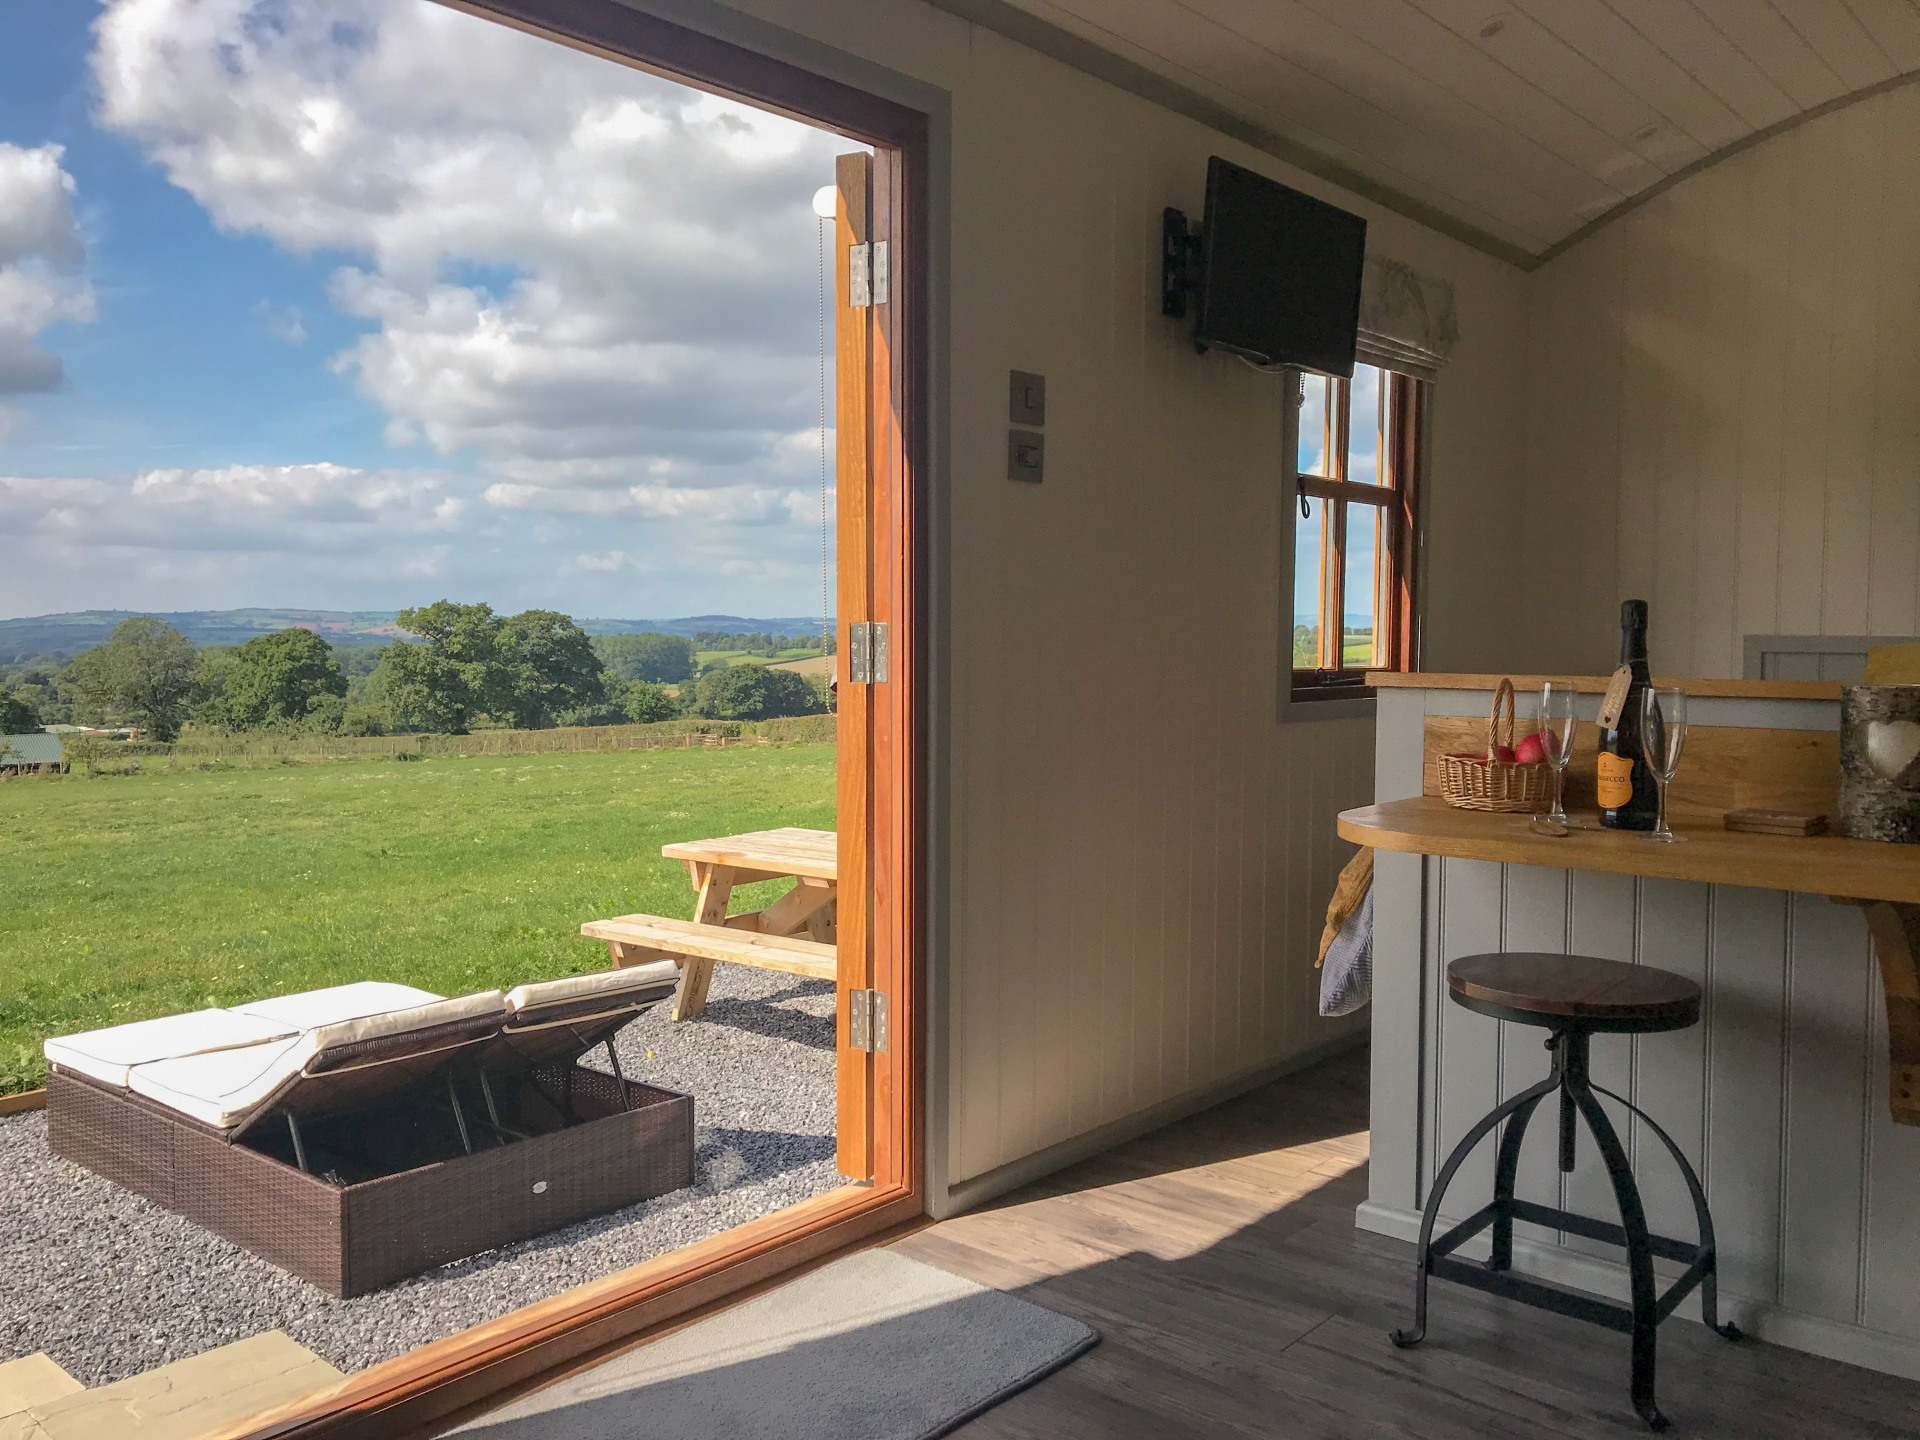 Shepherds Bliss | Glamping Shepherds Huts And Wagons in